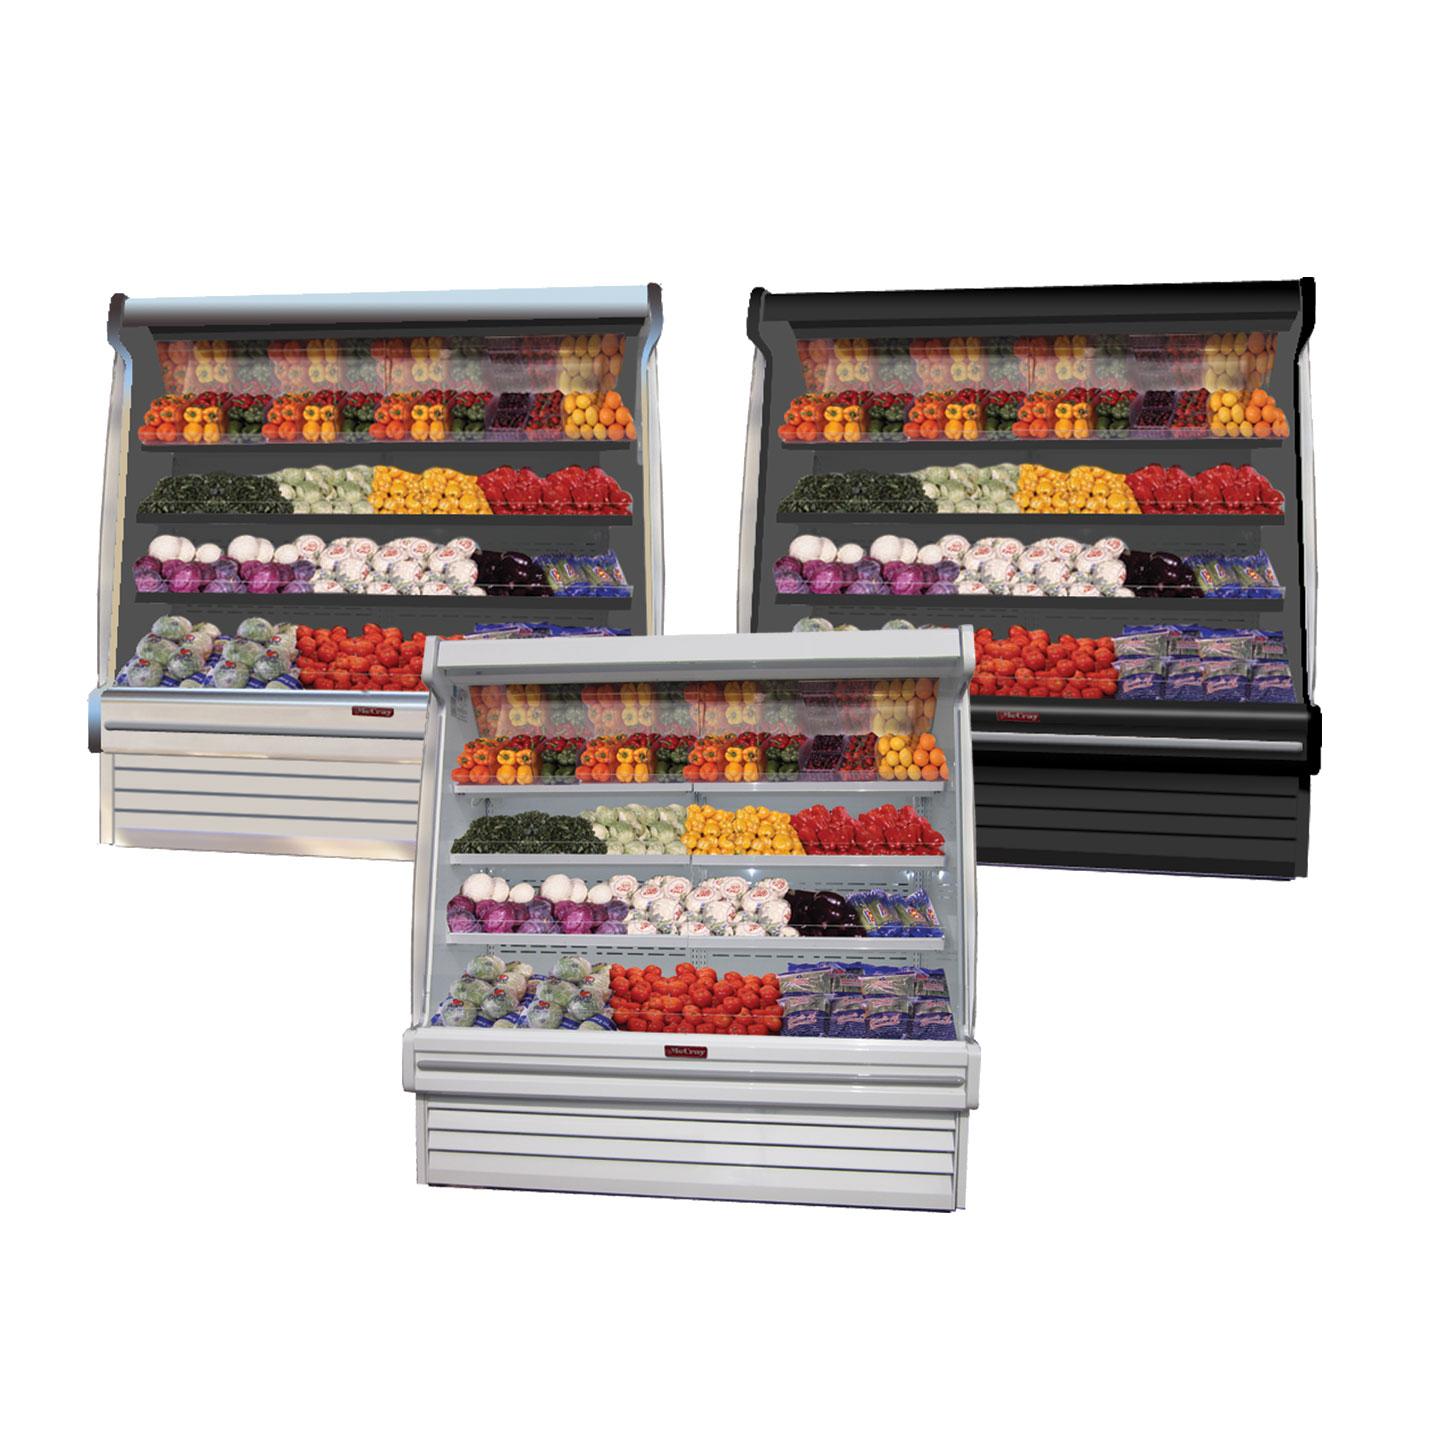 Howard-McCray R-OP35E-4S-LED display case, produce